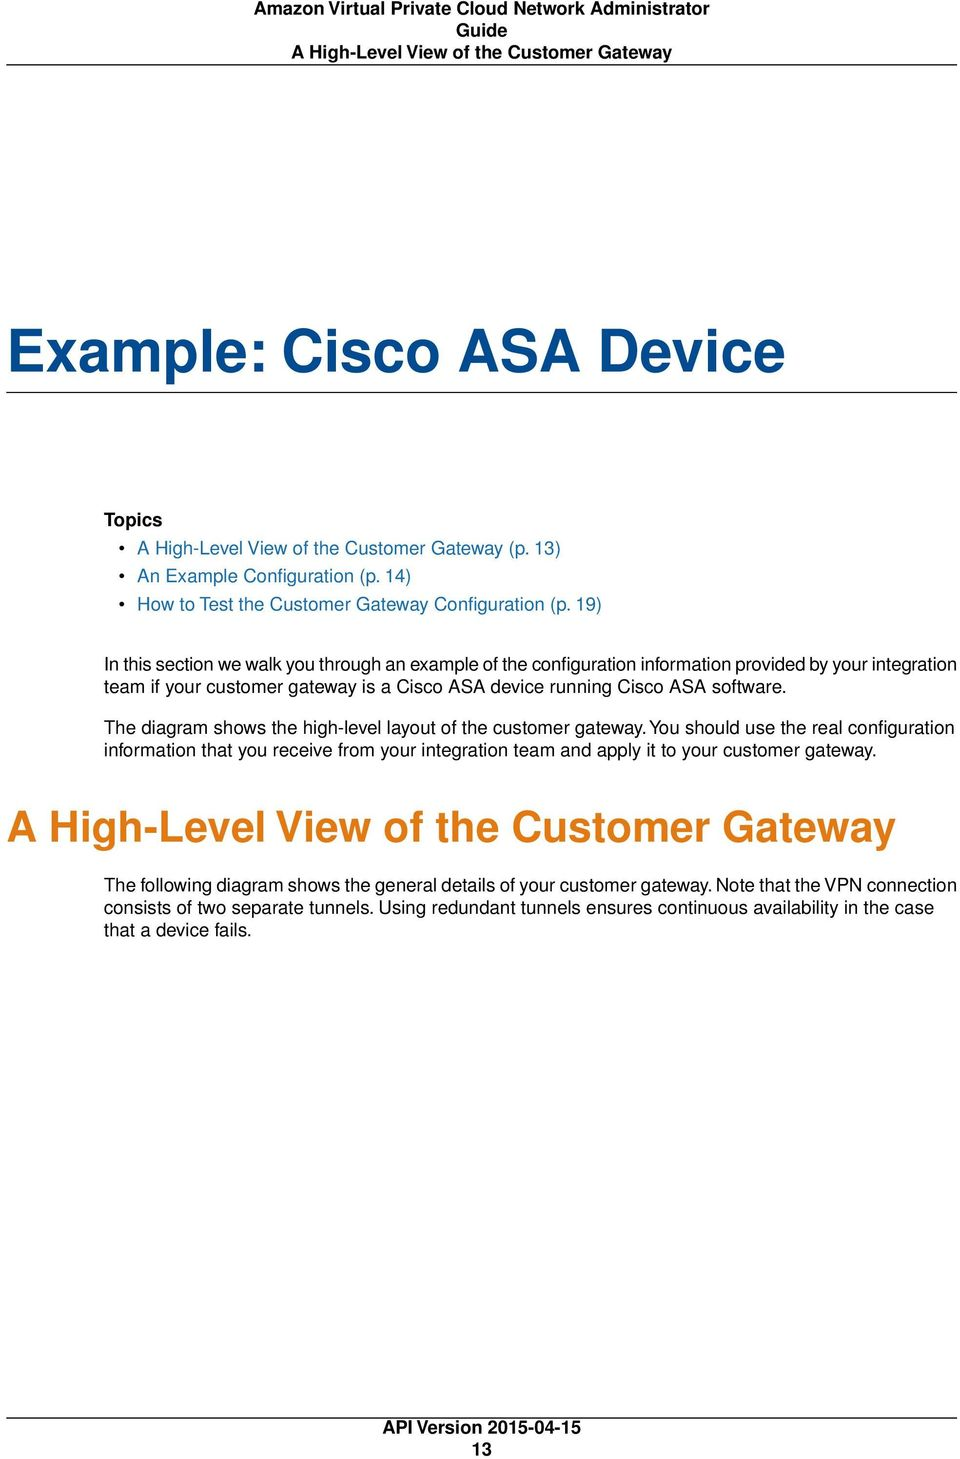 19) In this section we walk you through an example of the configuration information provided by your integration team if your customer gateway is a Cisco ASA device running Cisco ASA software.